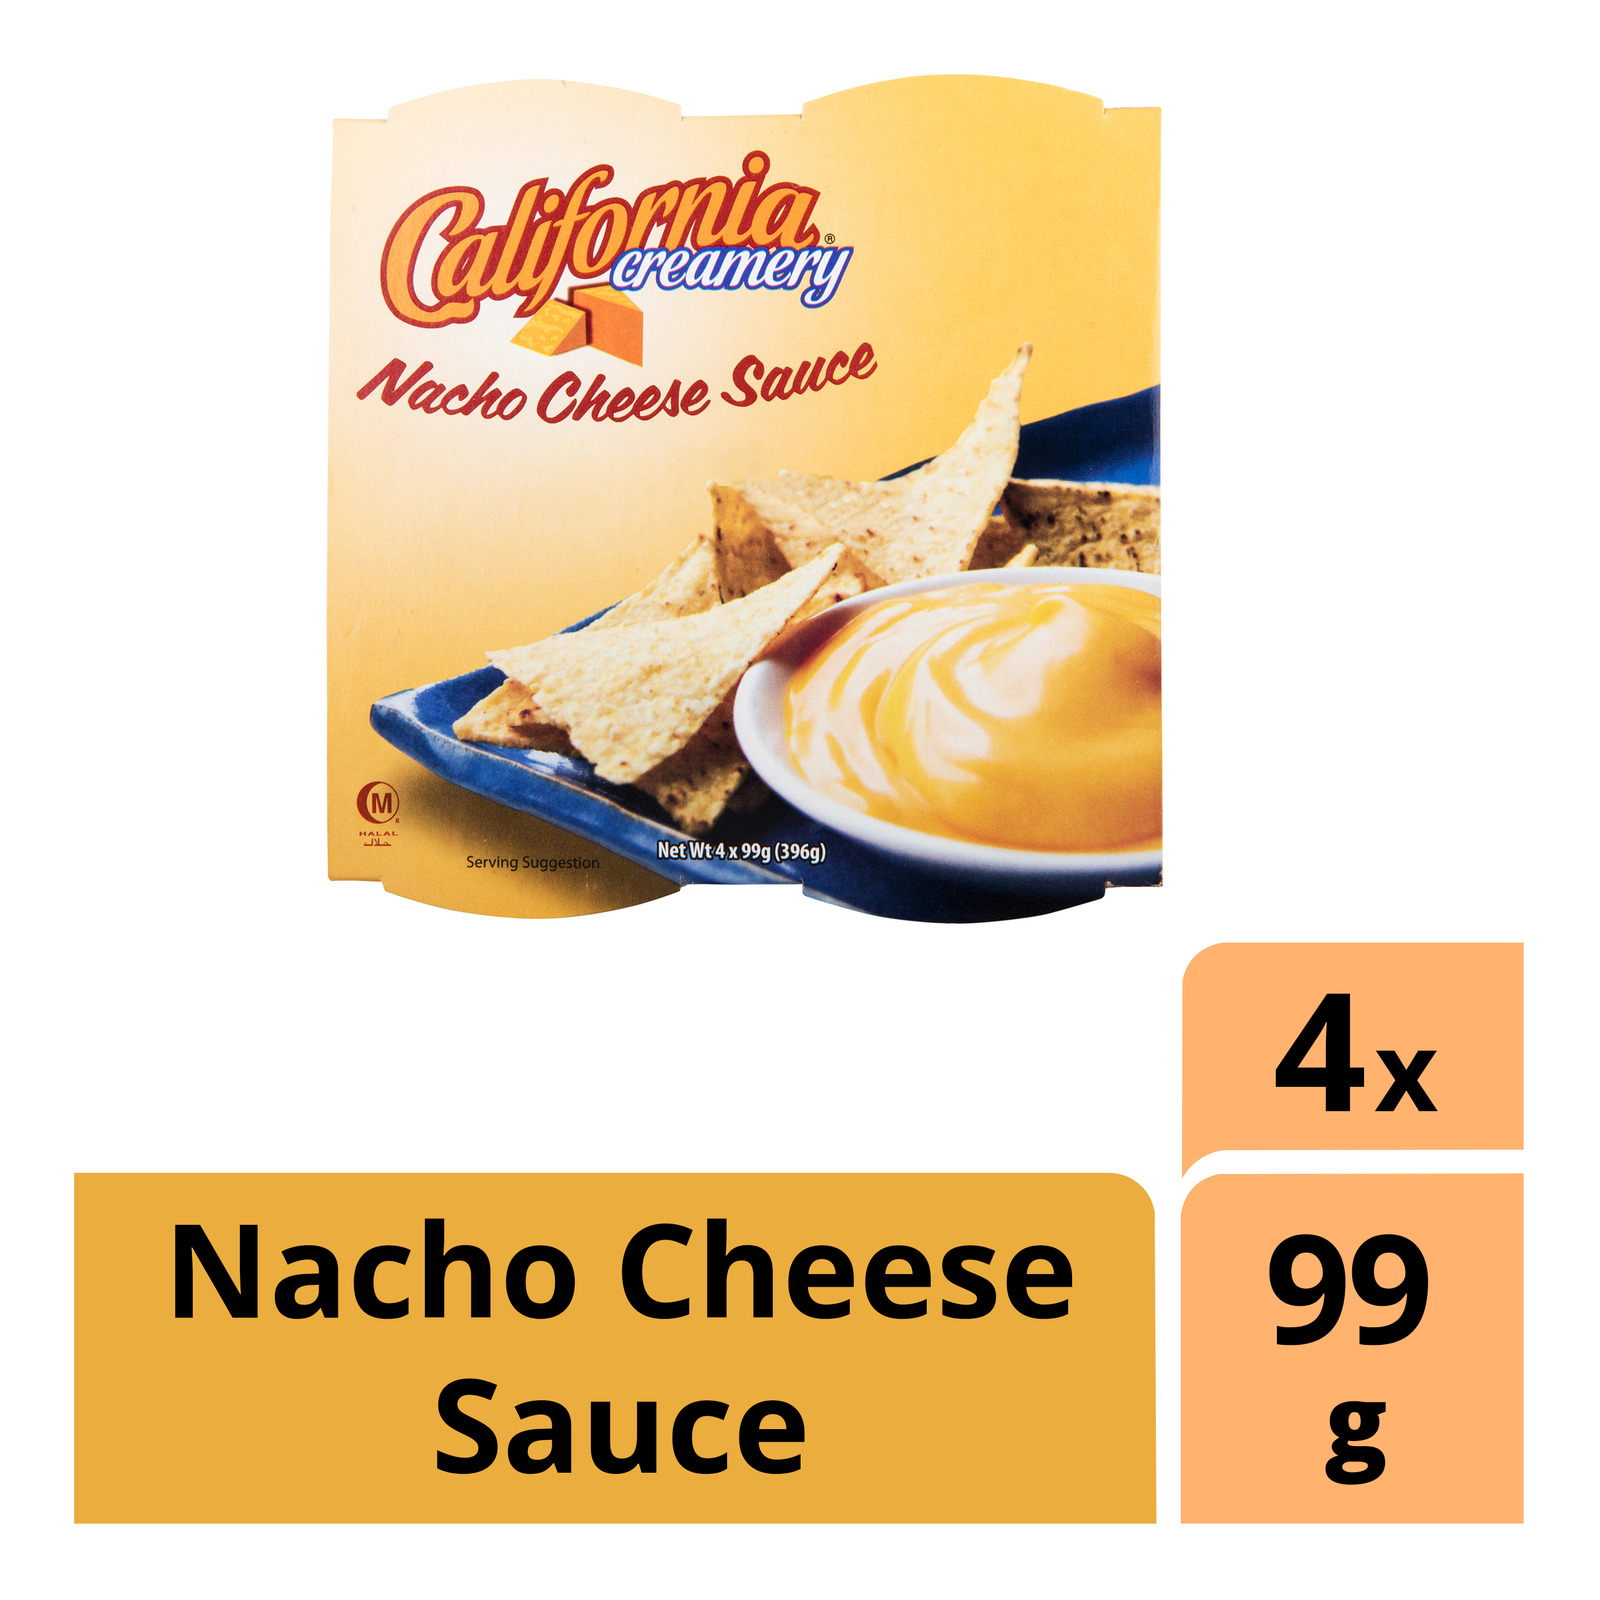 California Creamery Nacho Cheese Sauce